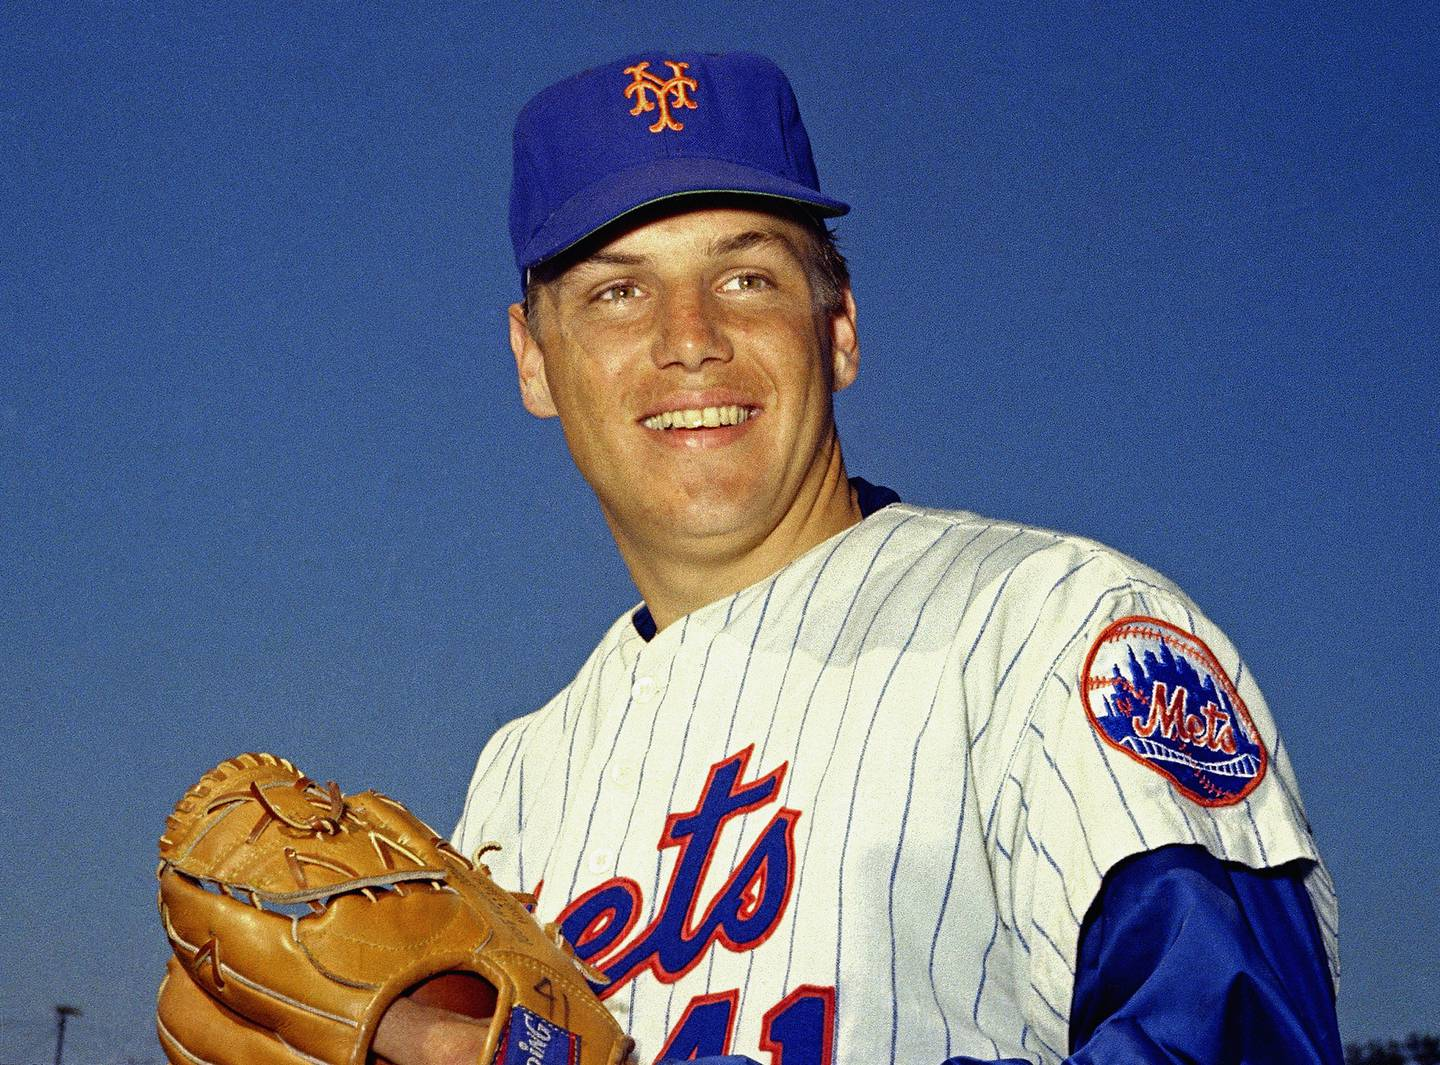 In this March 1968 file photo, New York Mets pitcher Tom Seaver poses for a photo, location not known.